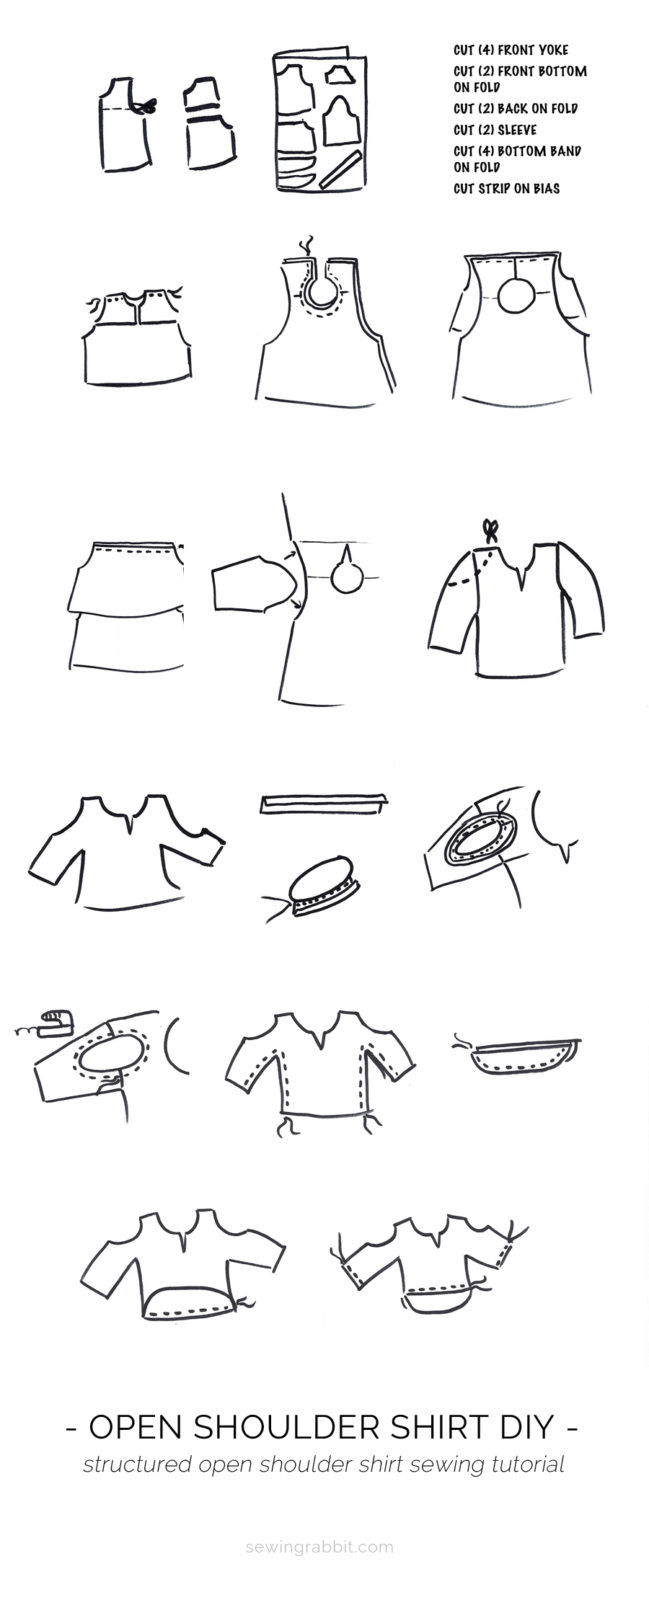 how to sew an open shoulder shirt